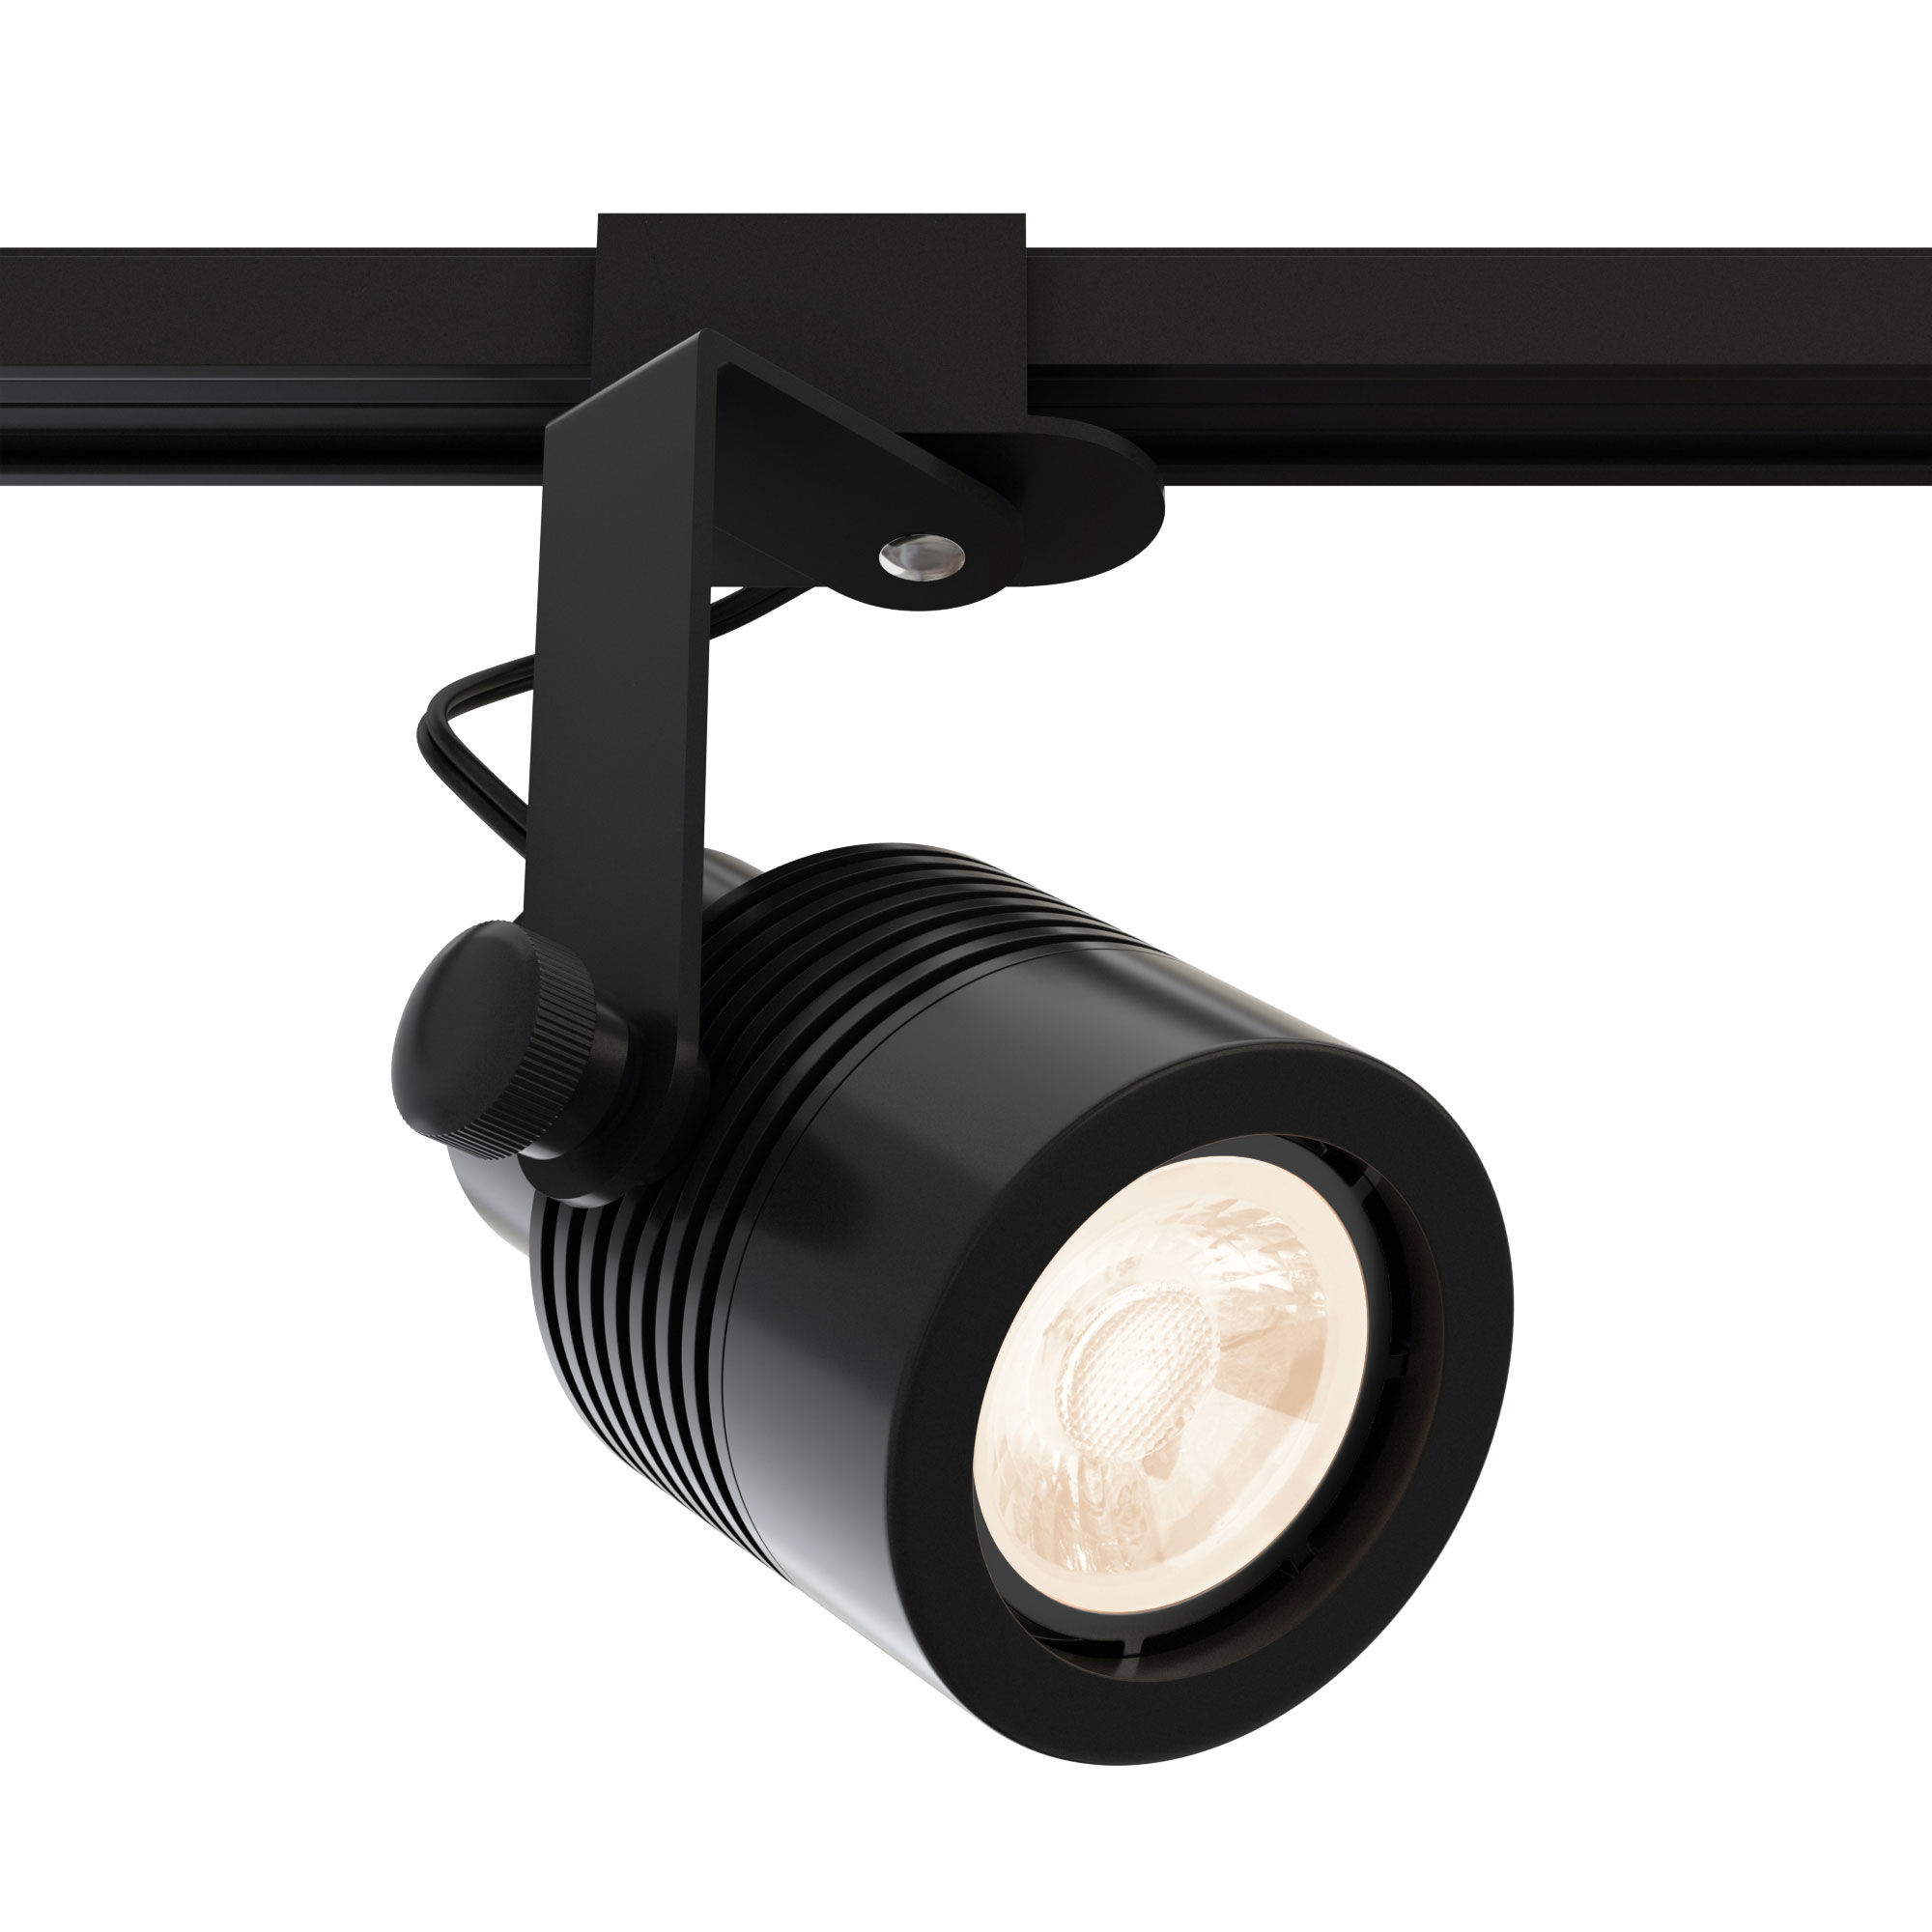 Micro outdoor track light mr16 12v by pureedge lighting tx12 micro bk aloadofball Gallery